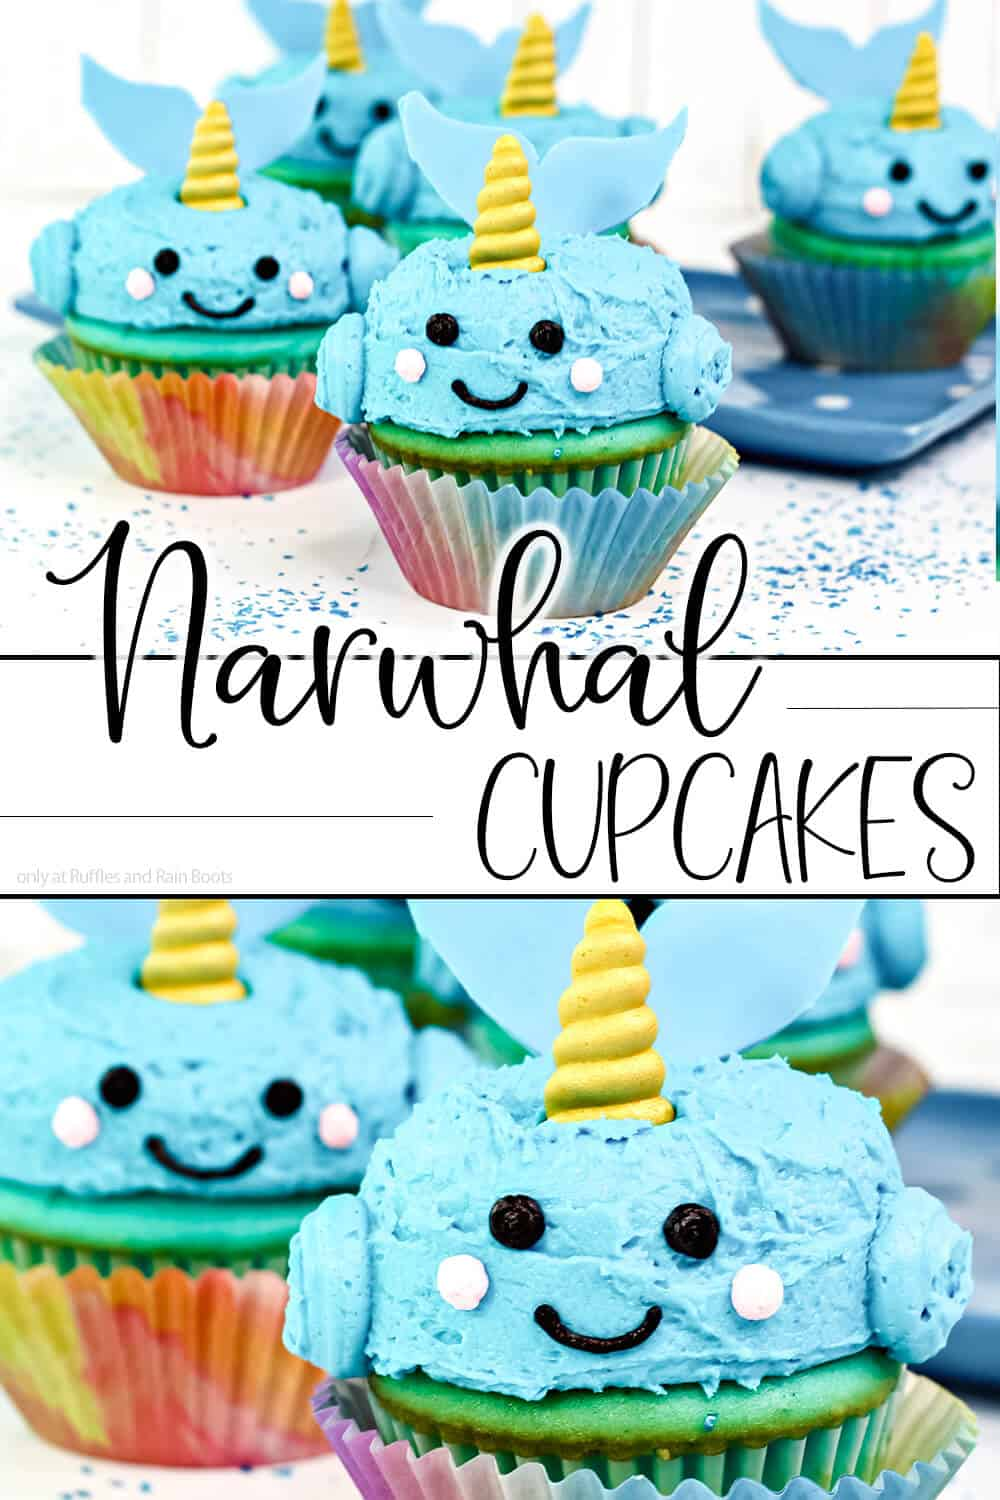 photo collage of kawaii cupcake decorating idea for narwhals with text which reads narwhal cupcakes for mermaid party